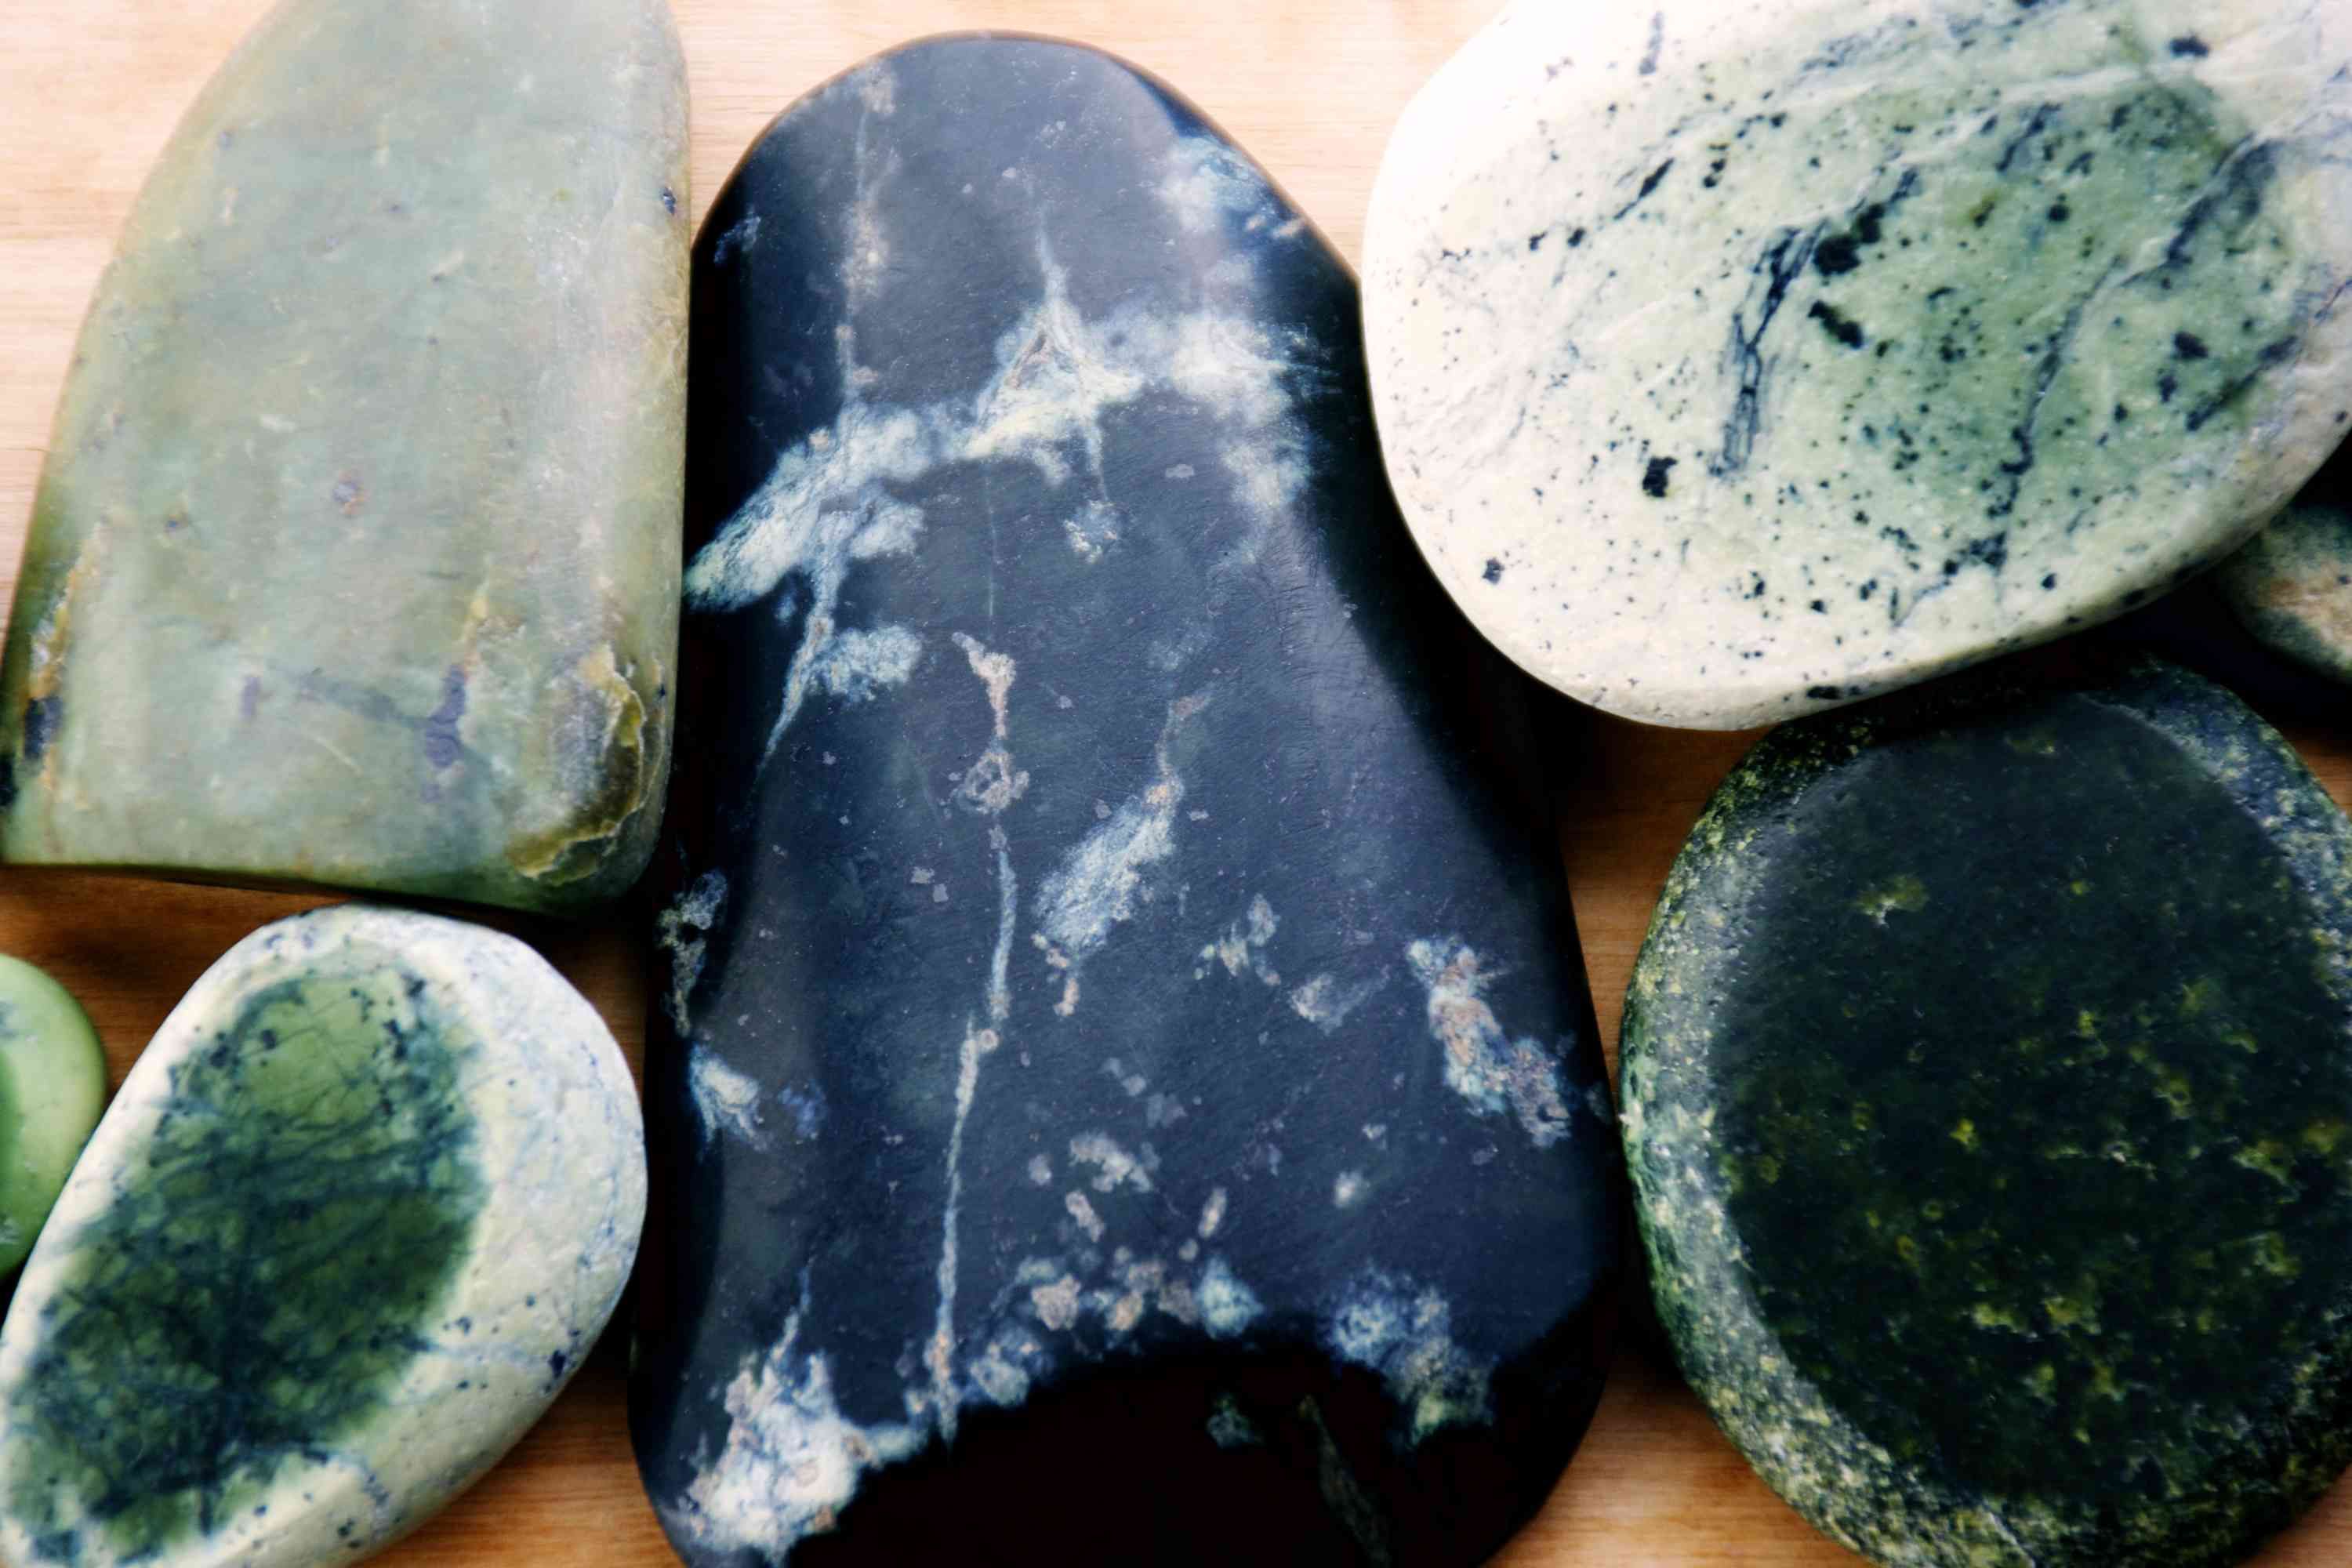 large pieces of pounamu (jade) stone of different shades of green, white, and black